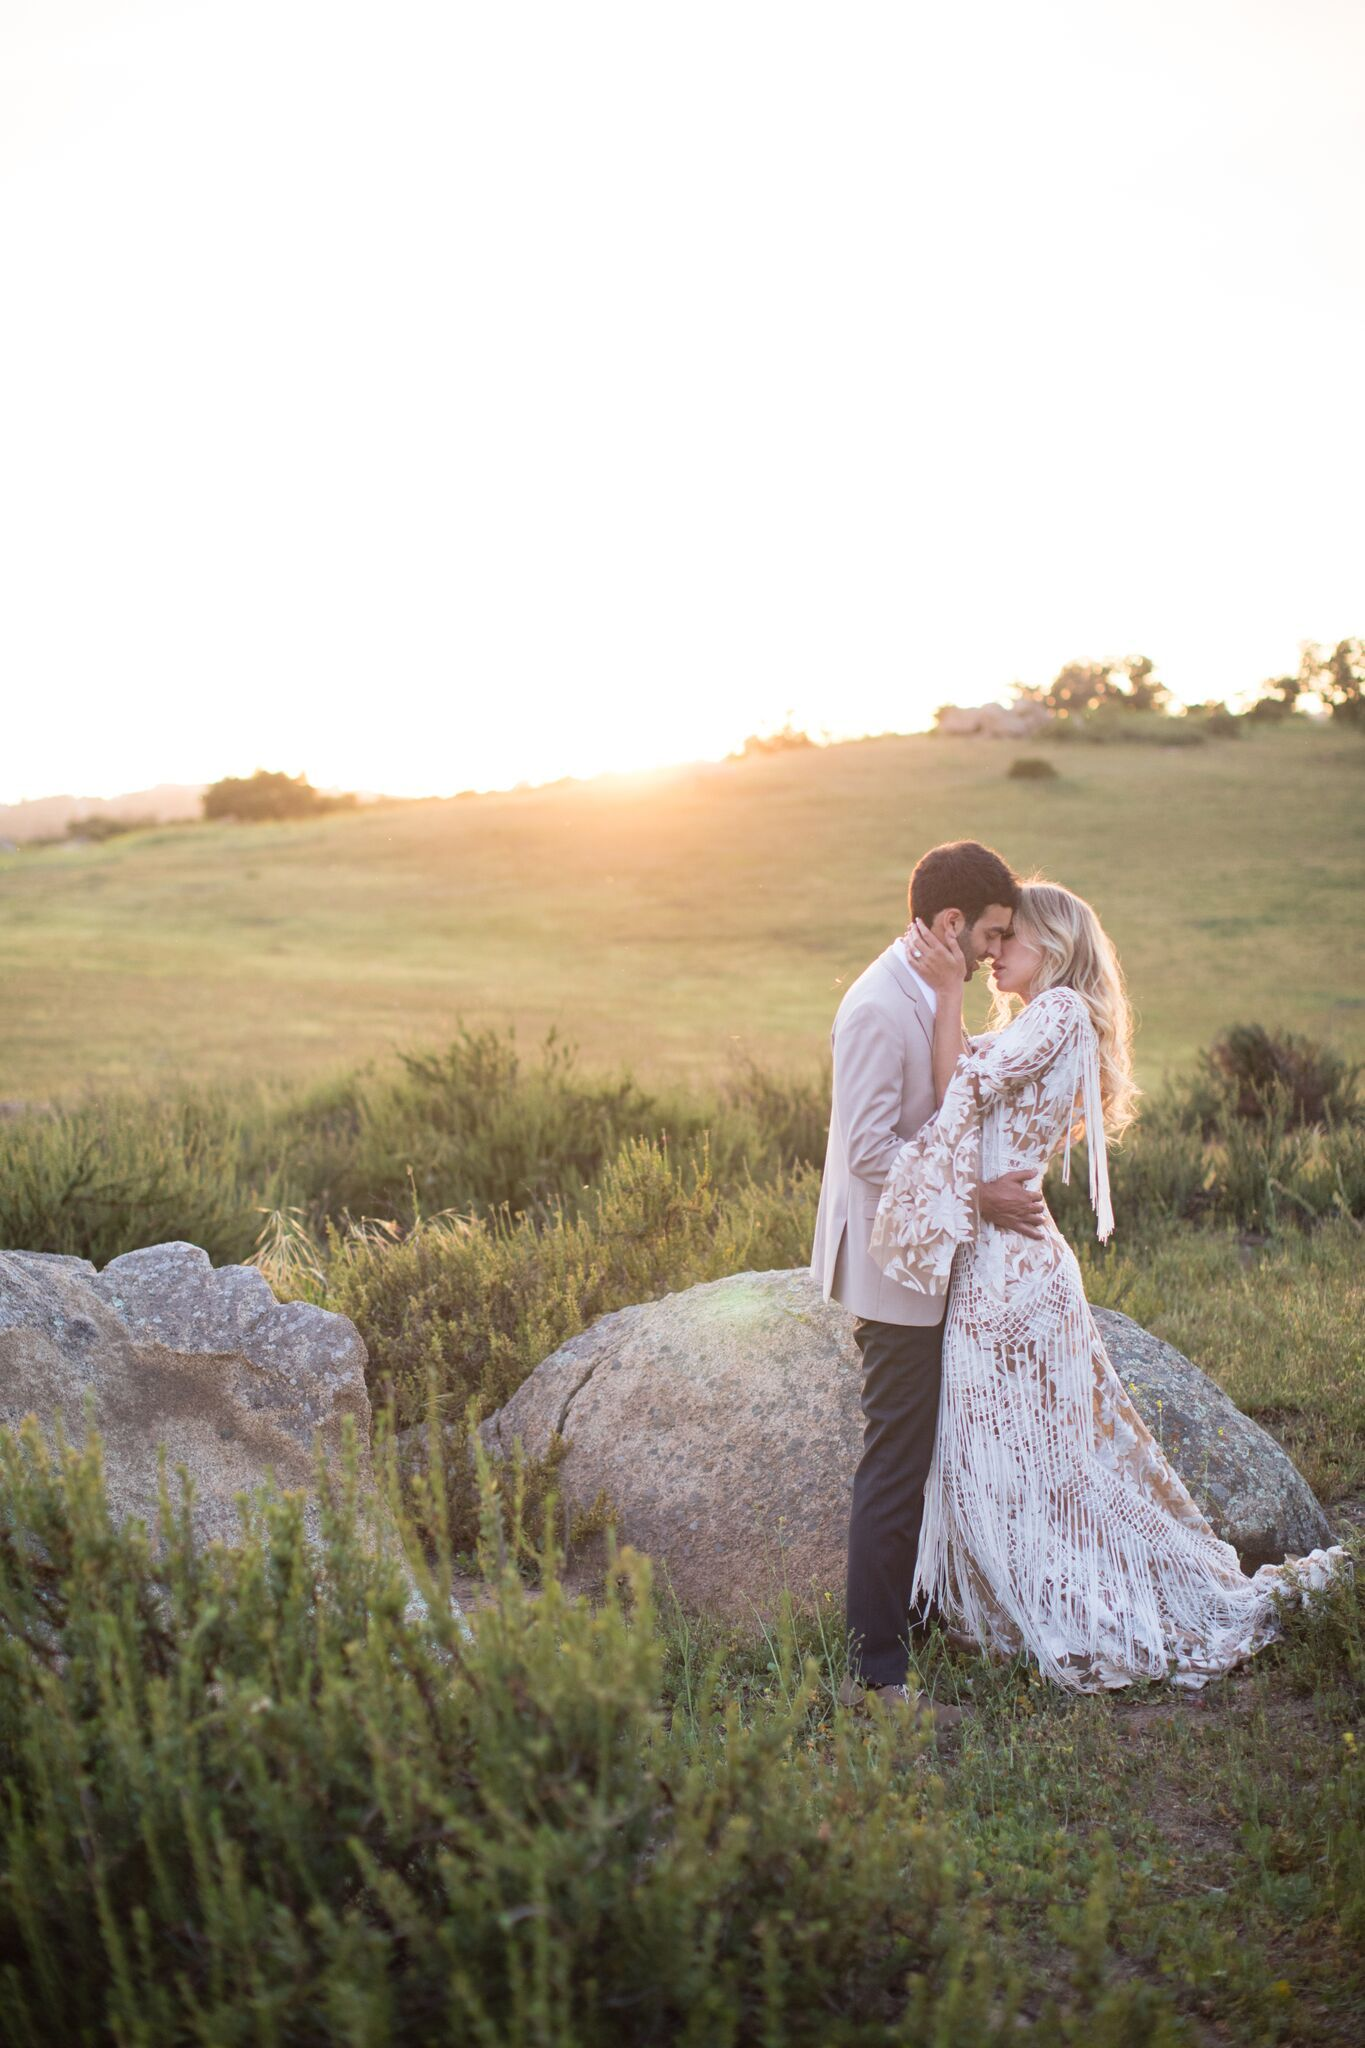 Ramona grasslands engagement photoshoot nicole george event planning  design photography by acqua photo also rh za pinterest